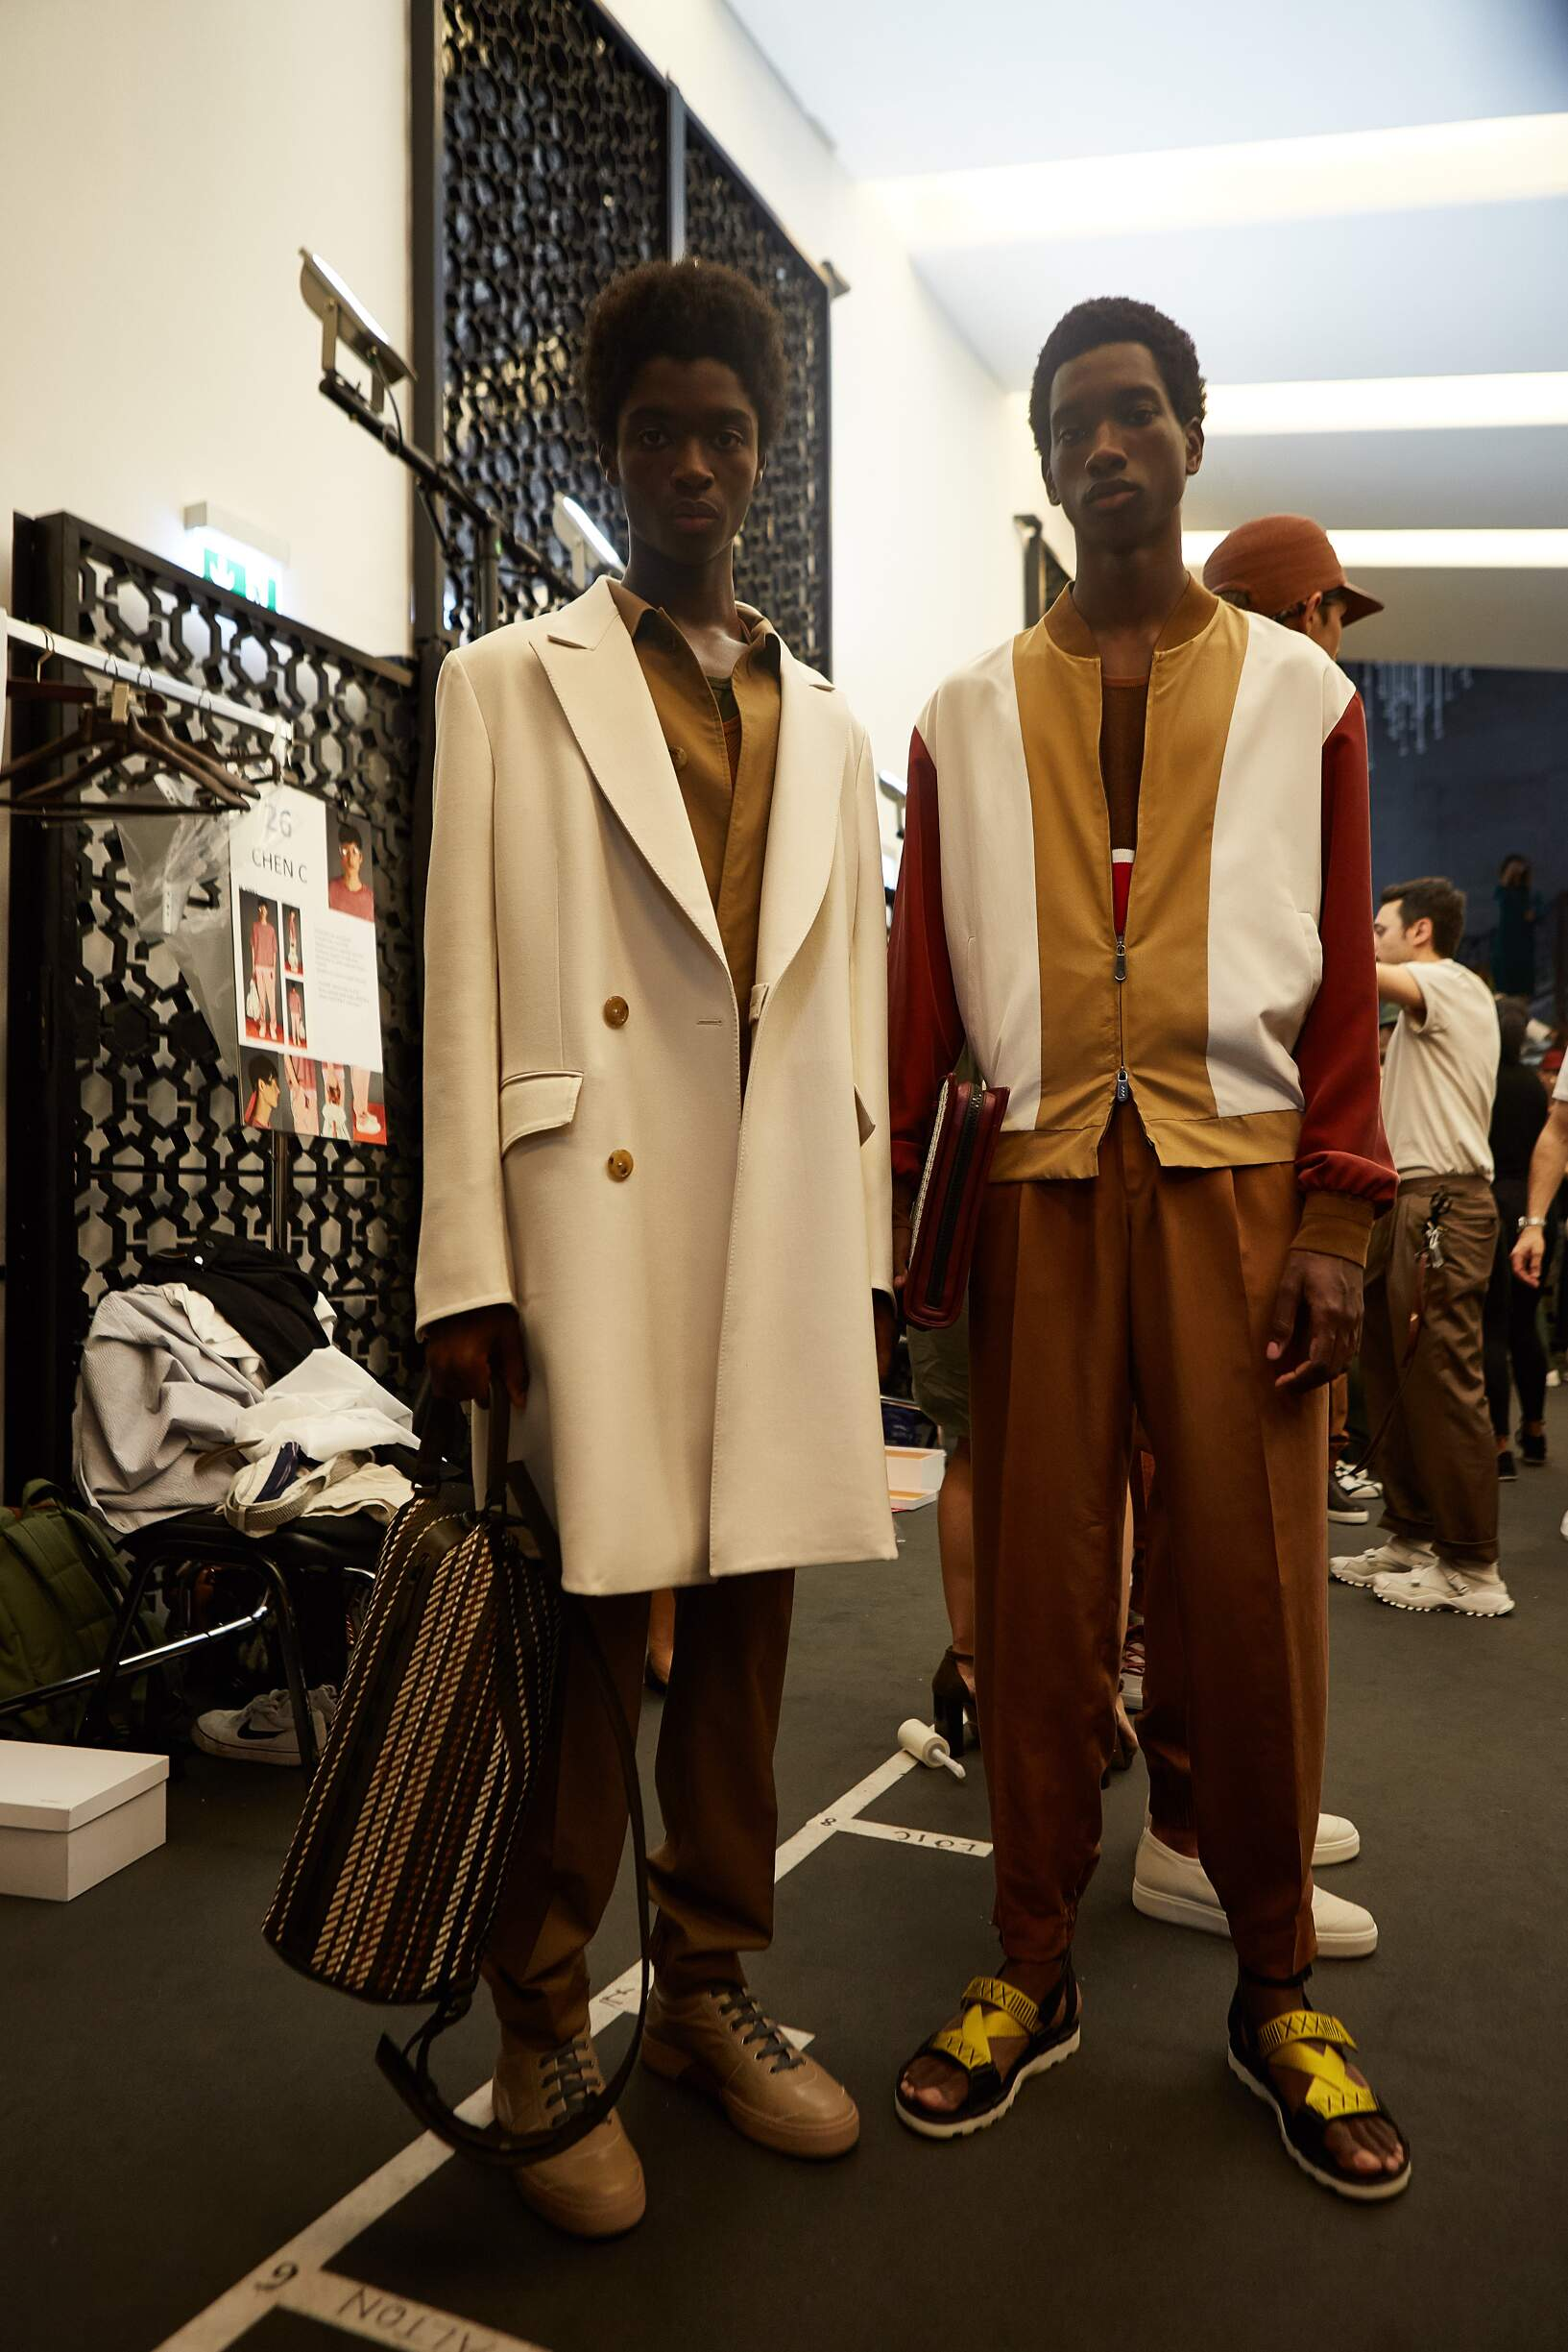 Backstage Ermenegildo Zegna Couture Milan Fashion Week Models